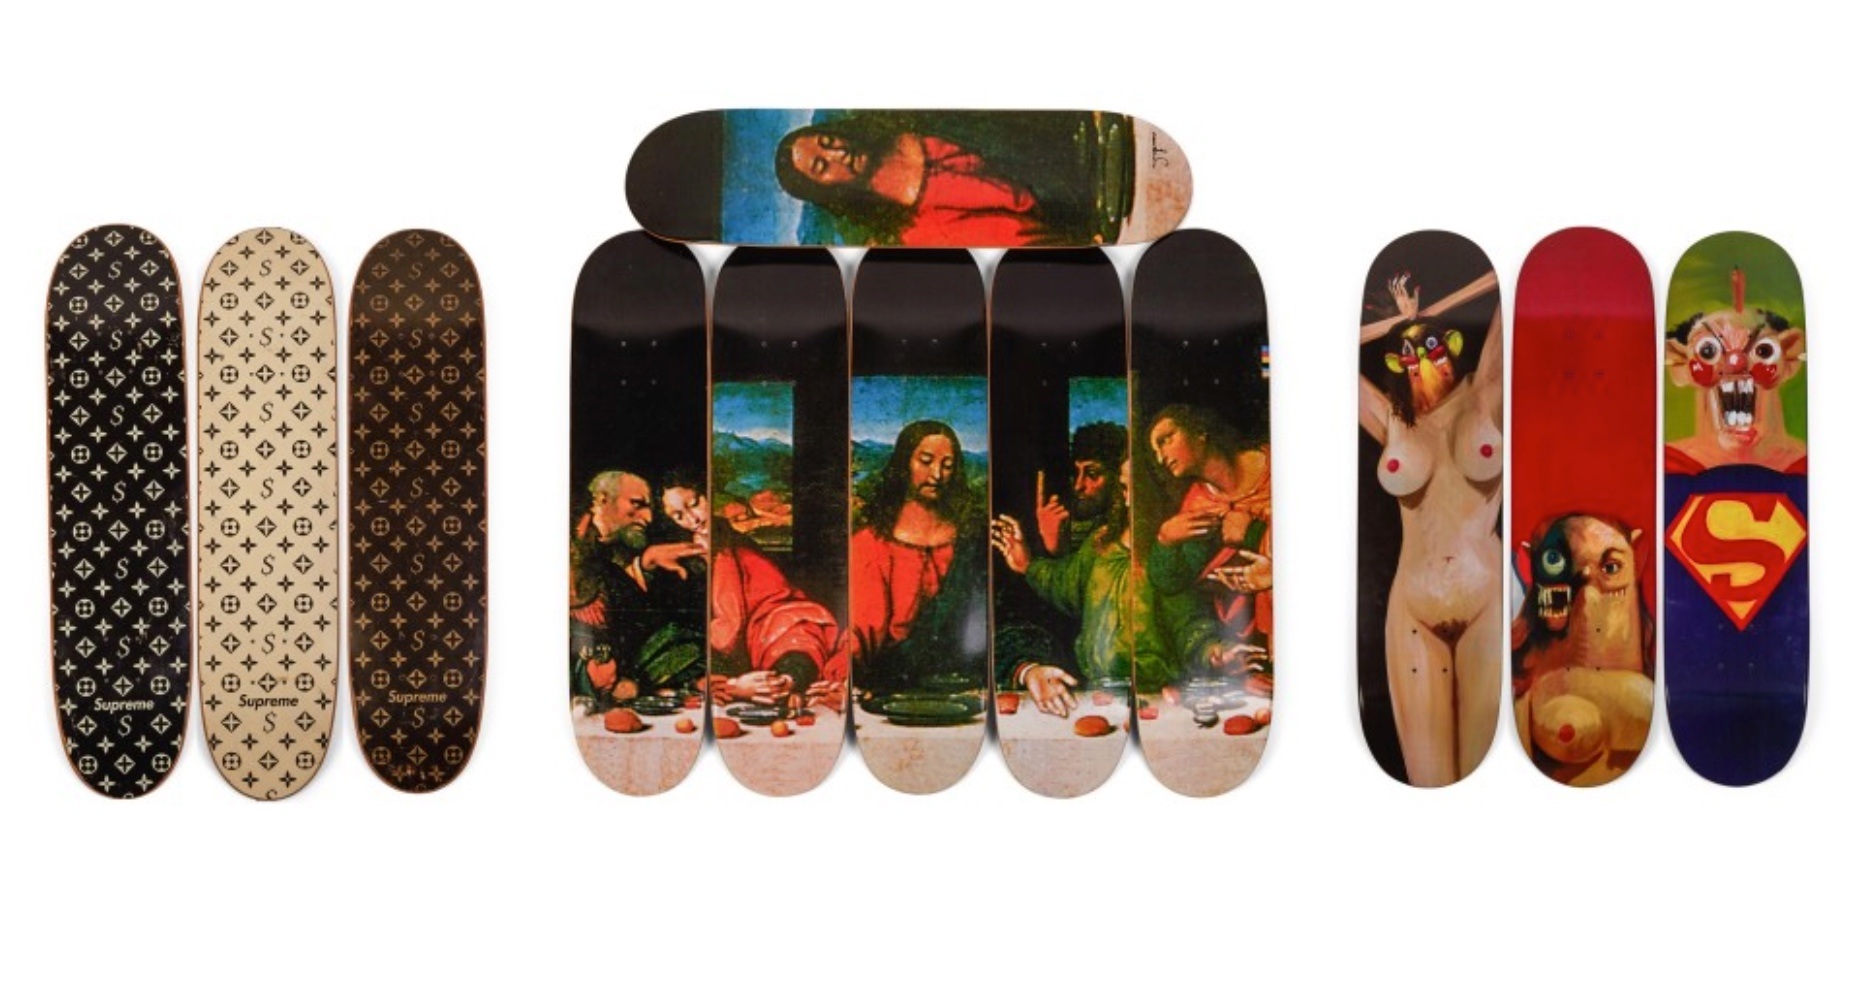 Auction for entire series of Supreme skateboard decks expected to hit  nearly  1 million da280c94734